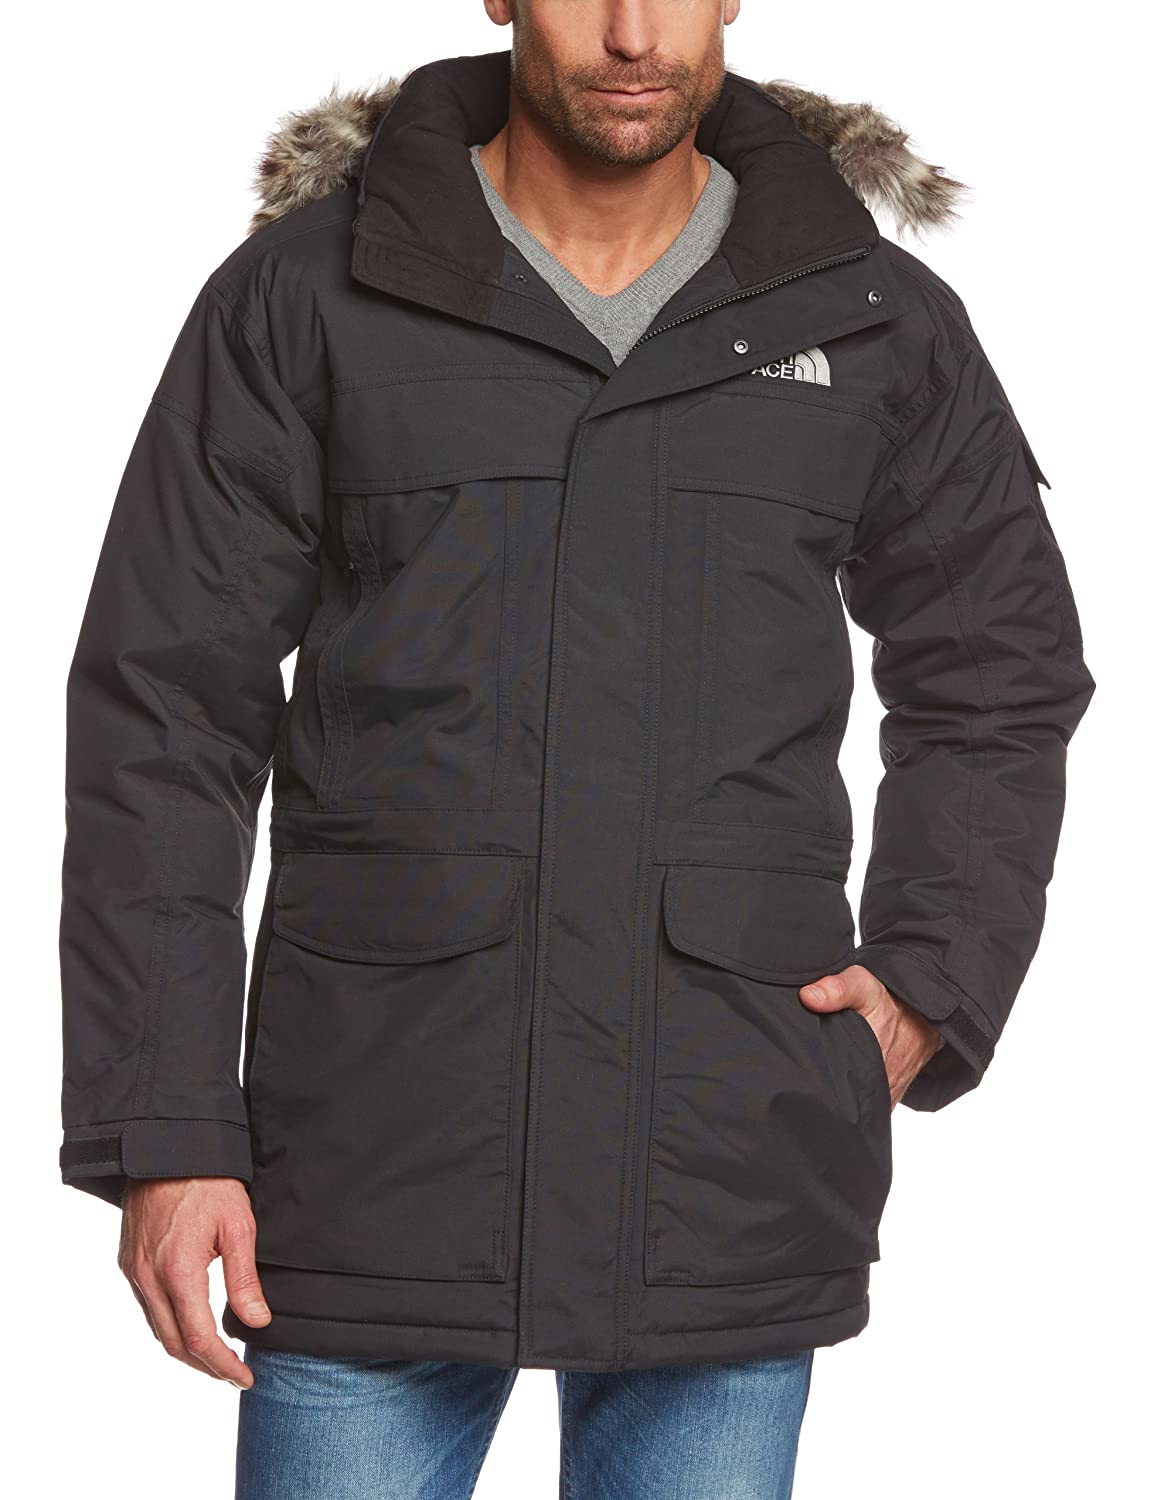 THE NORTH FACE Herren Parka McMurdo kaufen